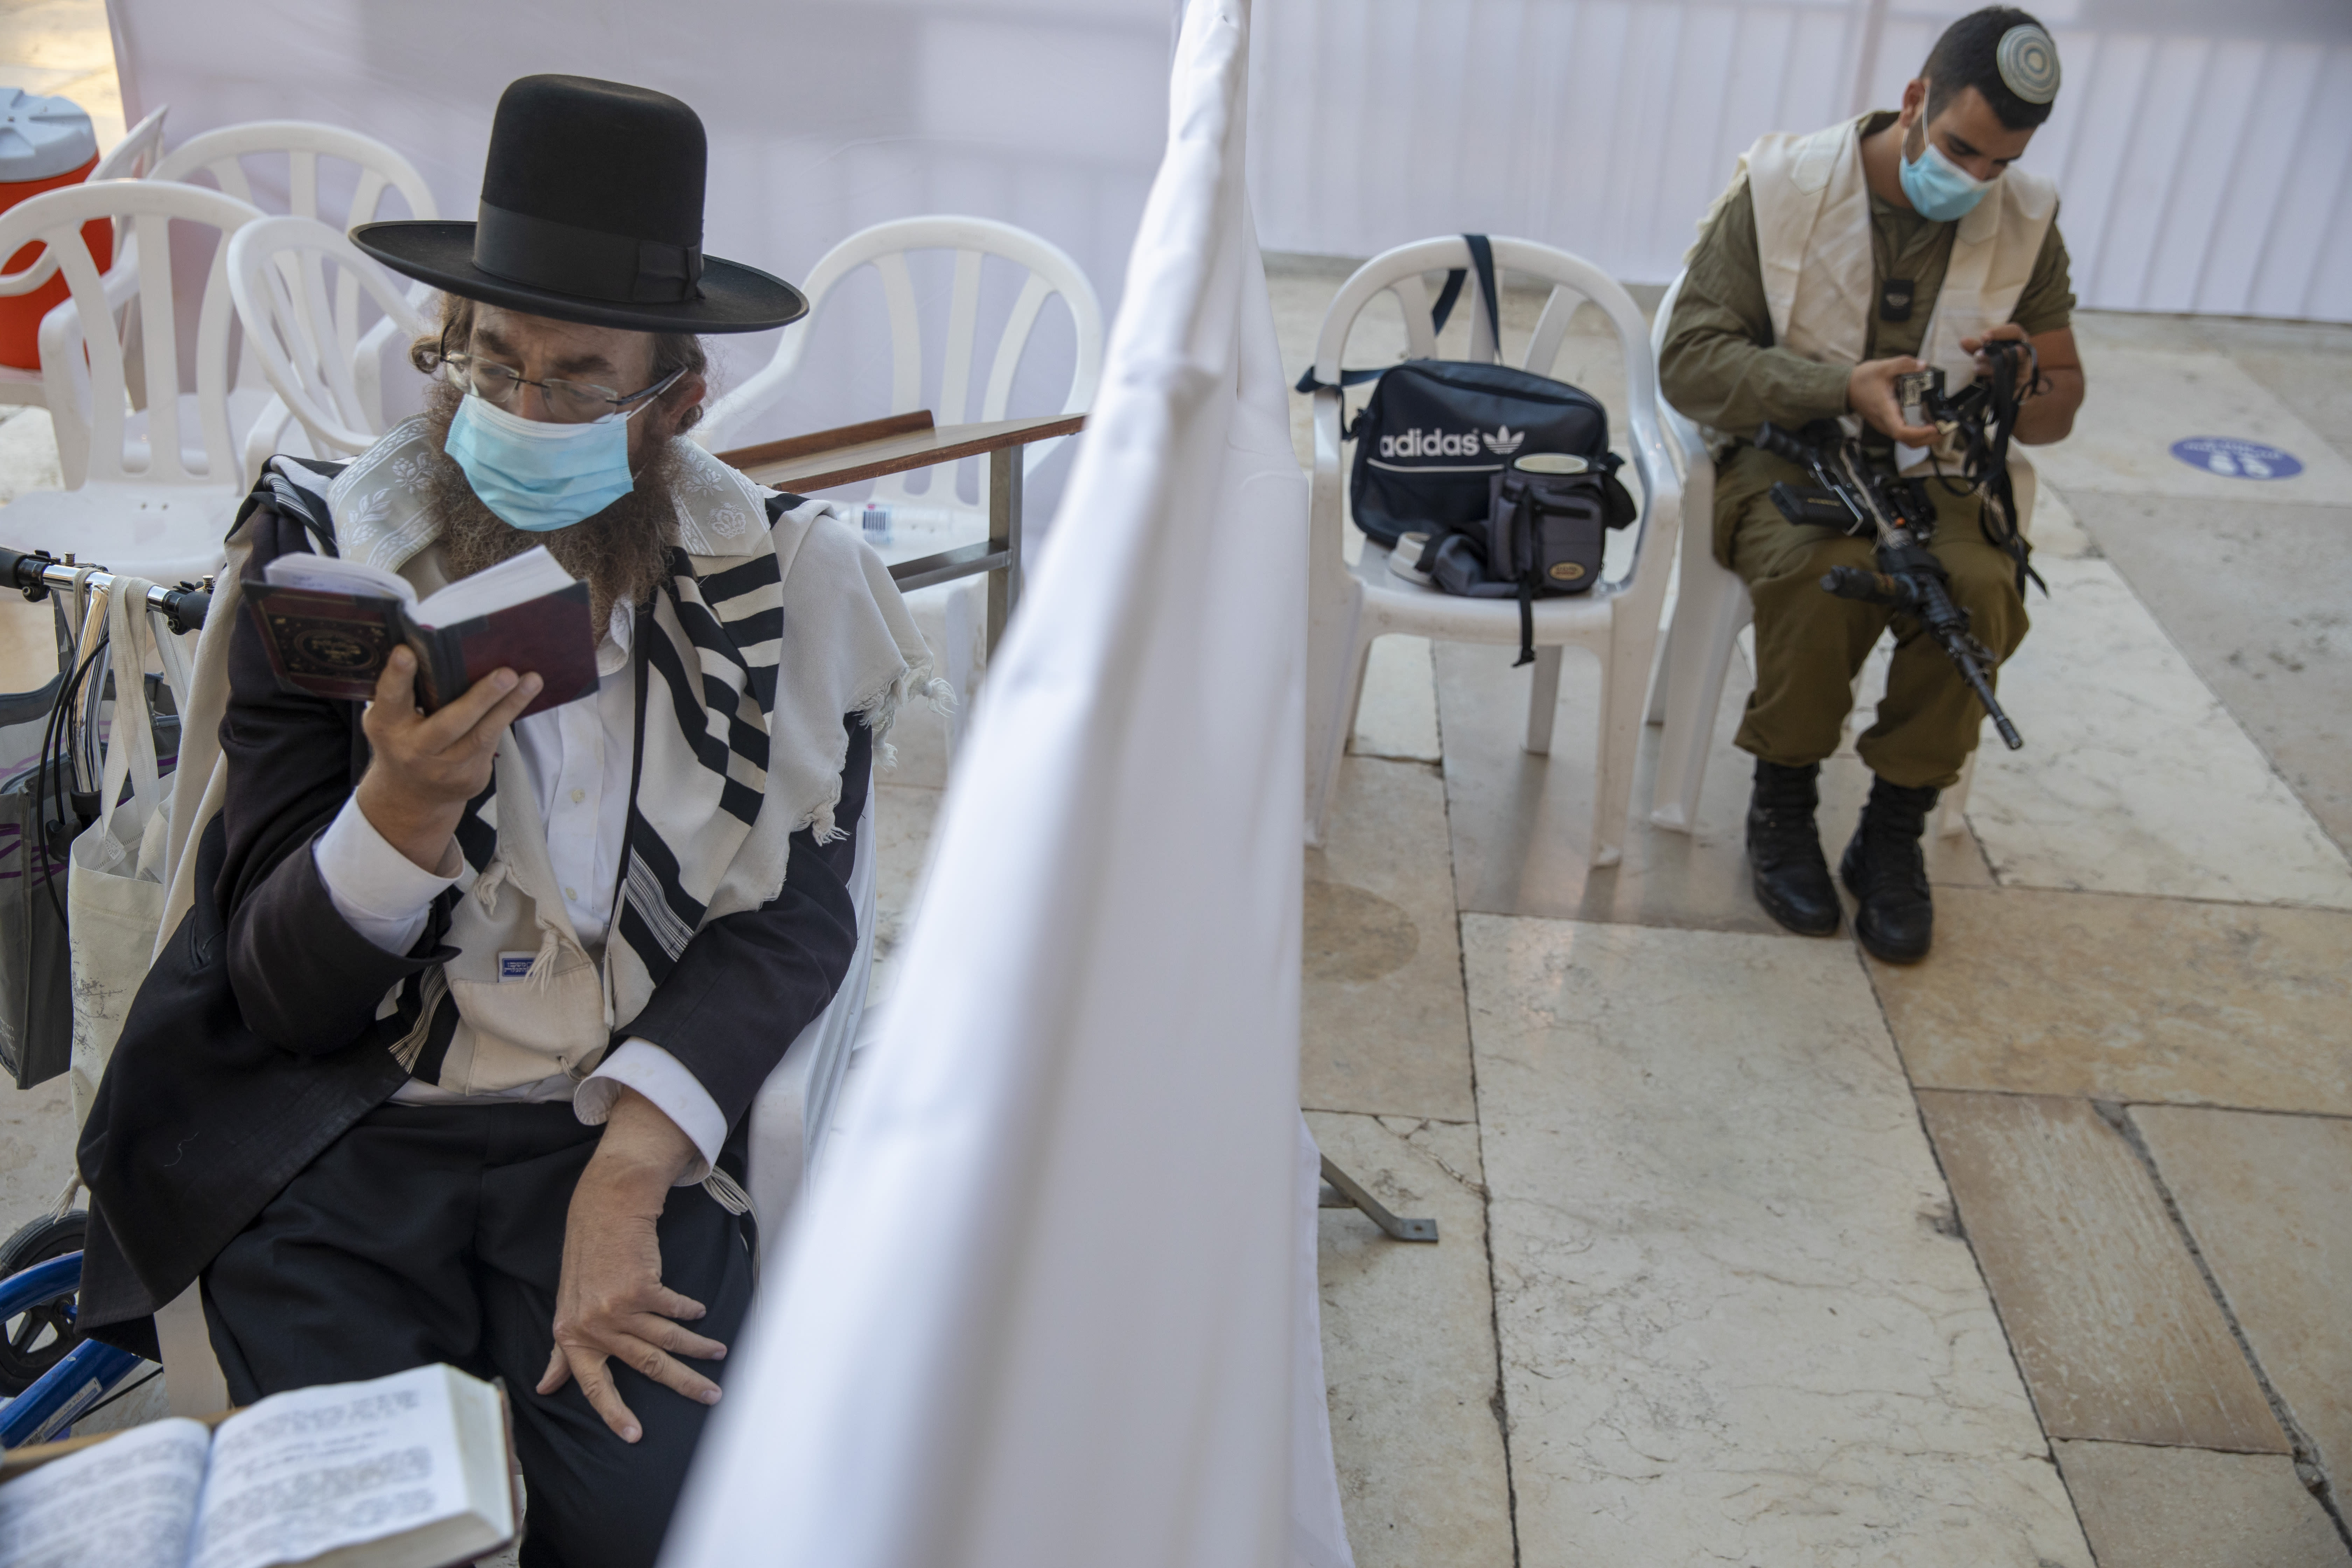 With a social distancing barrier, an ultra-Orthodox Jewish man and an Israeli soldier pray ahead of Yom Kippur, the holiest day in the Jewish year which starts at sundown Sunday during a three-week nationwide lockdown to curb the spread of the coronavirus at the Western Wall, in Jerusalem's old city, Sunday, Sept. 27, 2020. (AP Photo/Ariel Schalit)